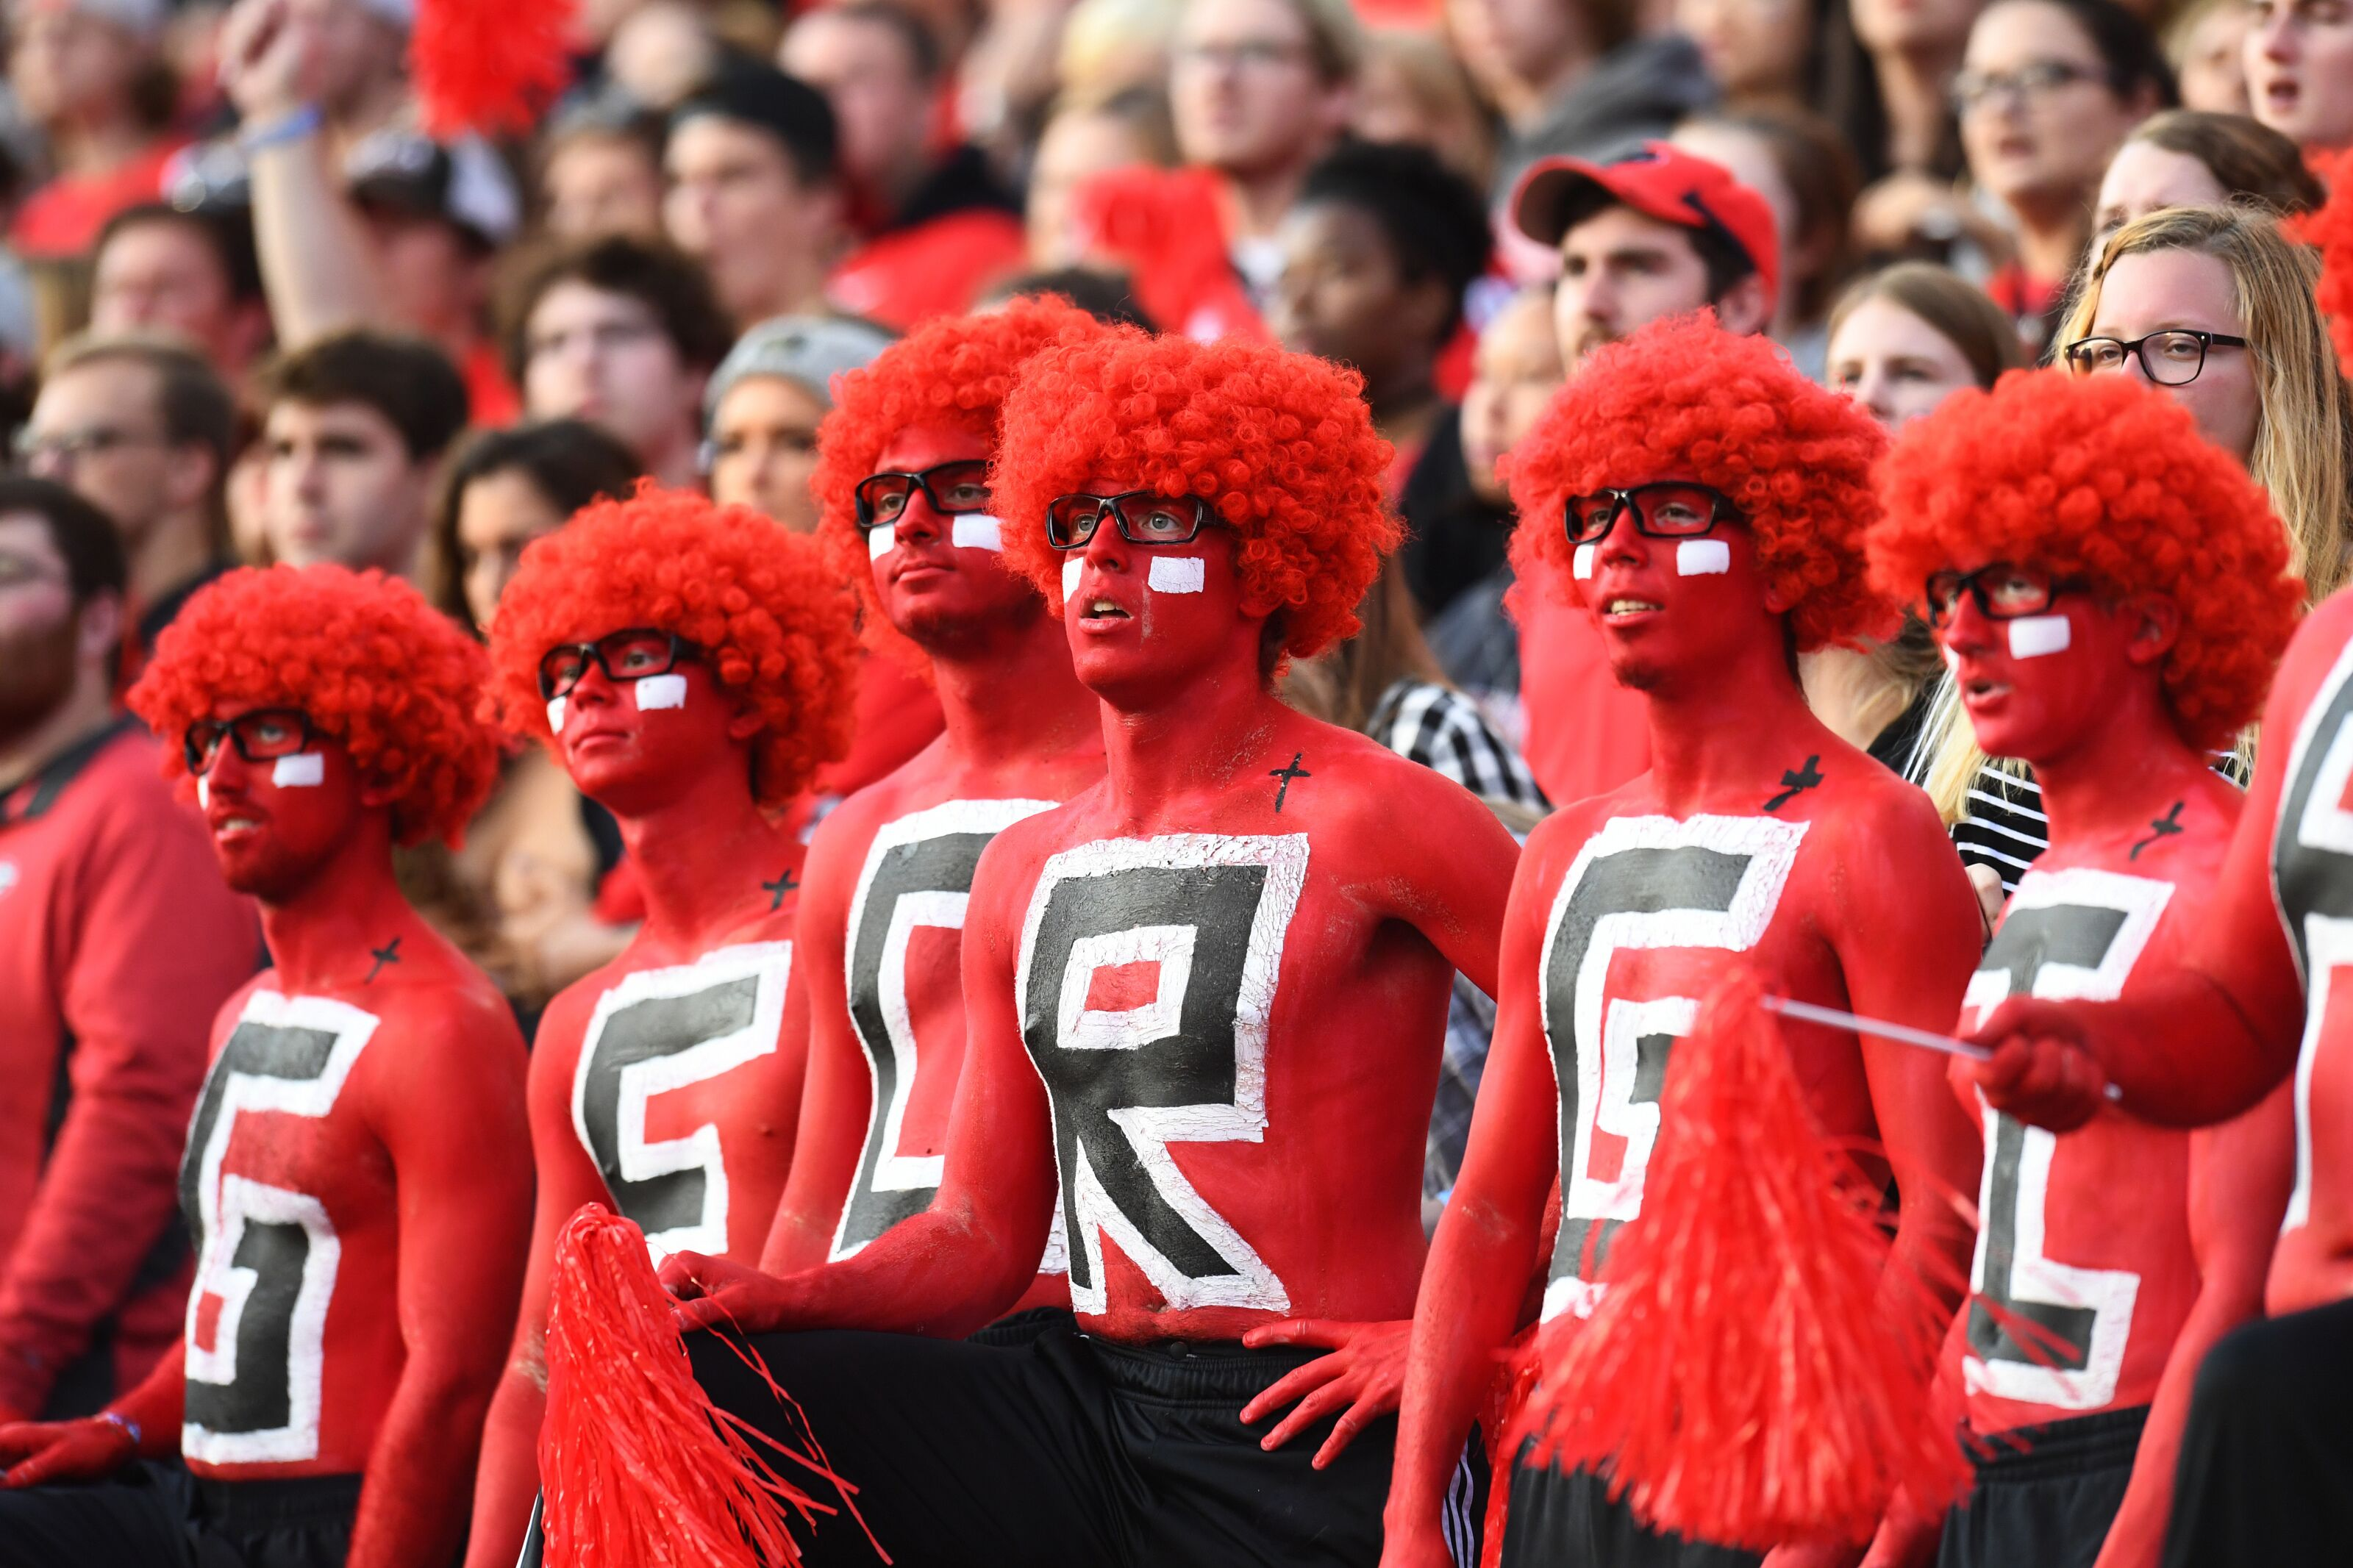 Georgia football fans are ready to party like it's 1980…or are they?